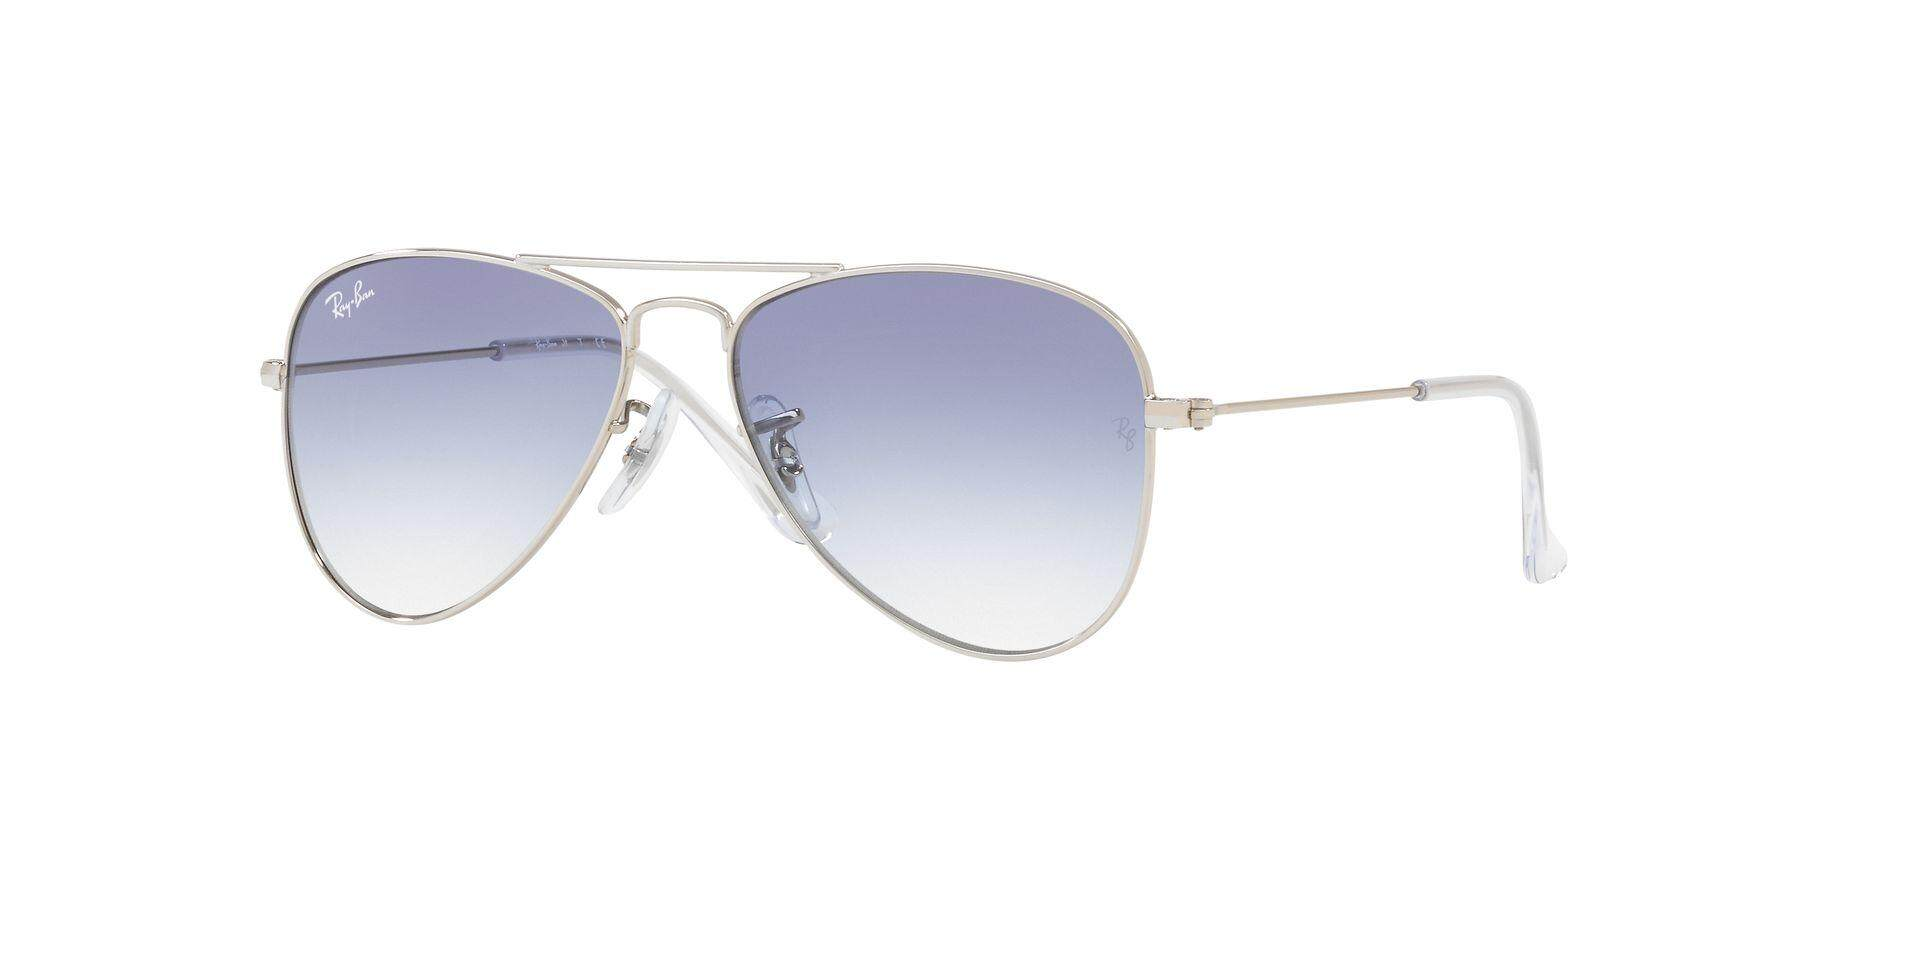 17e4cdcdba781 Ray Ban Products for the Best Price in Malaysia